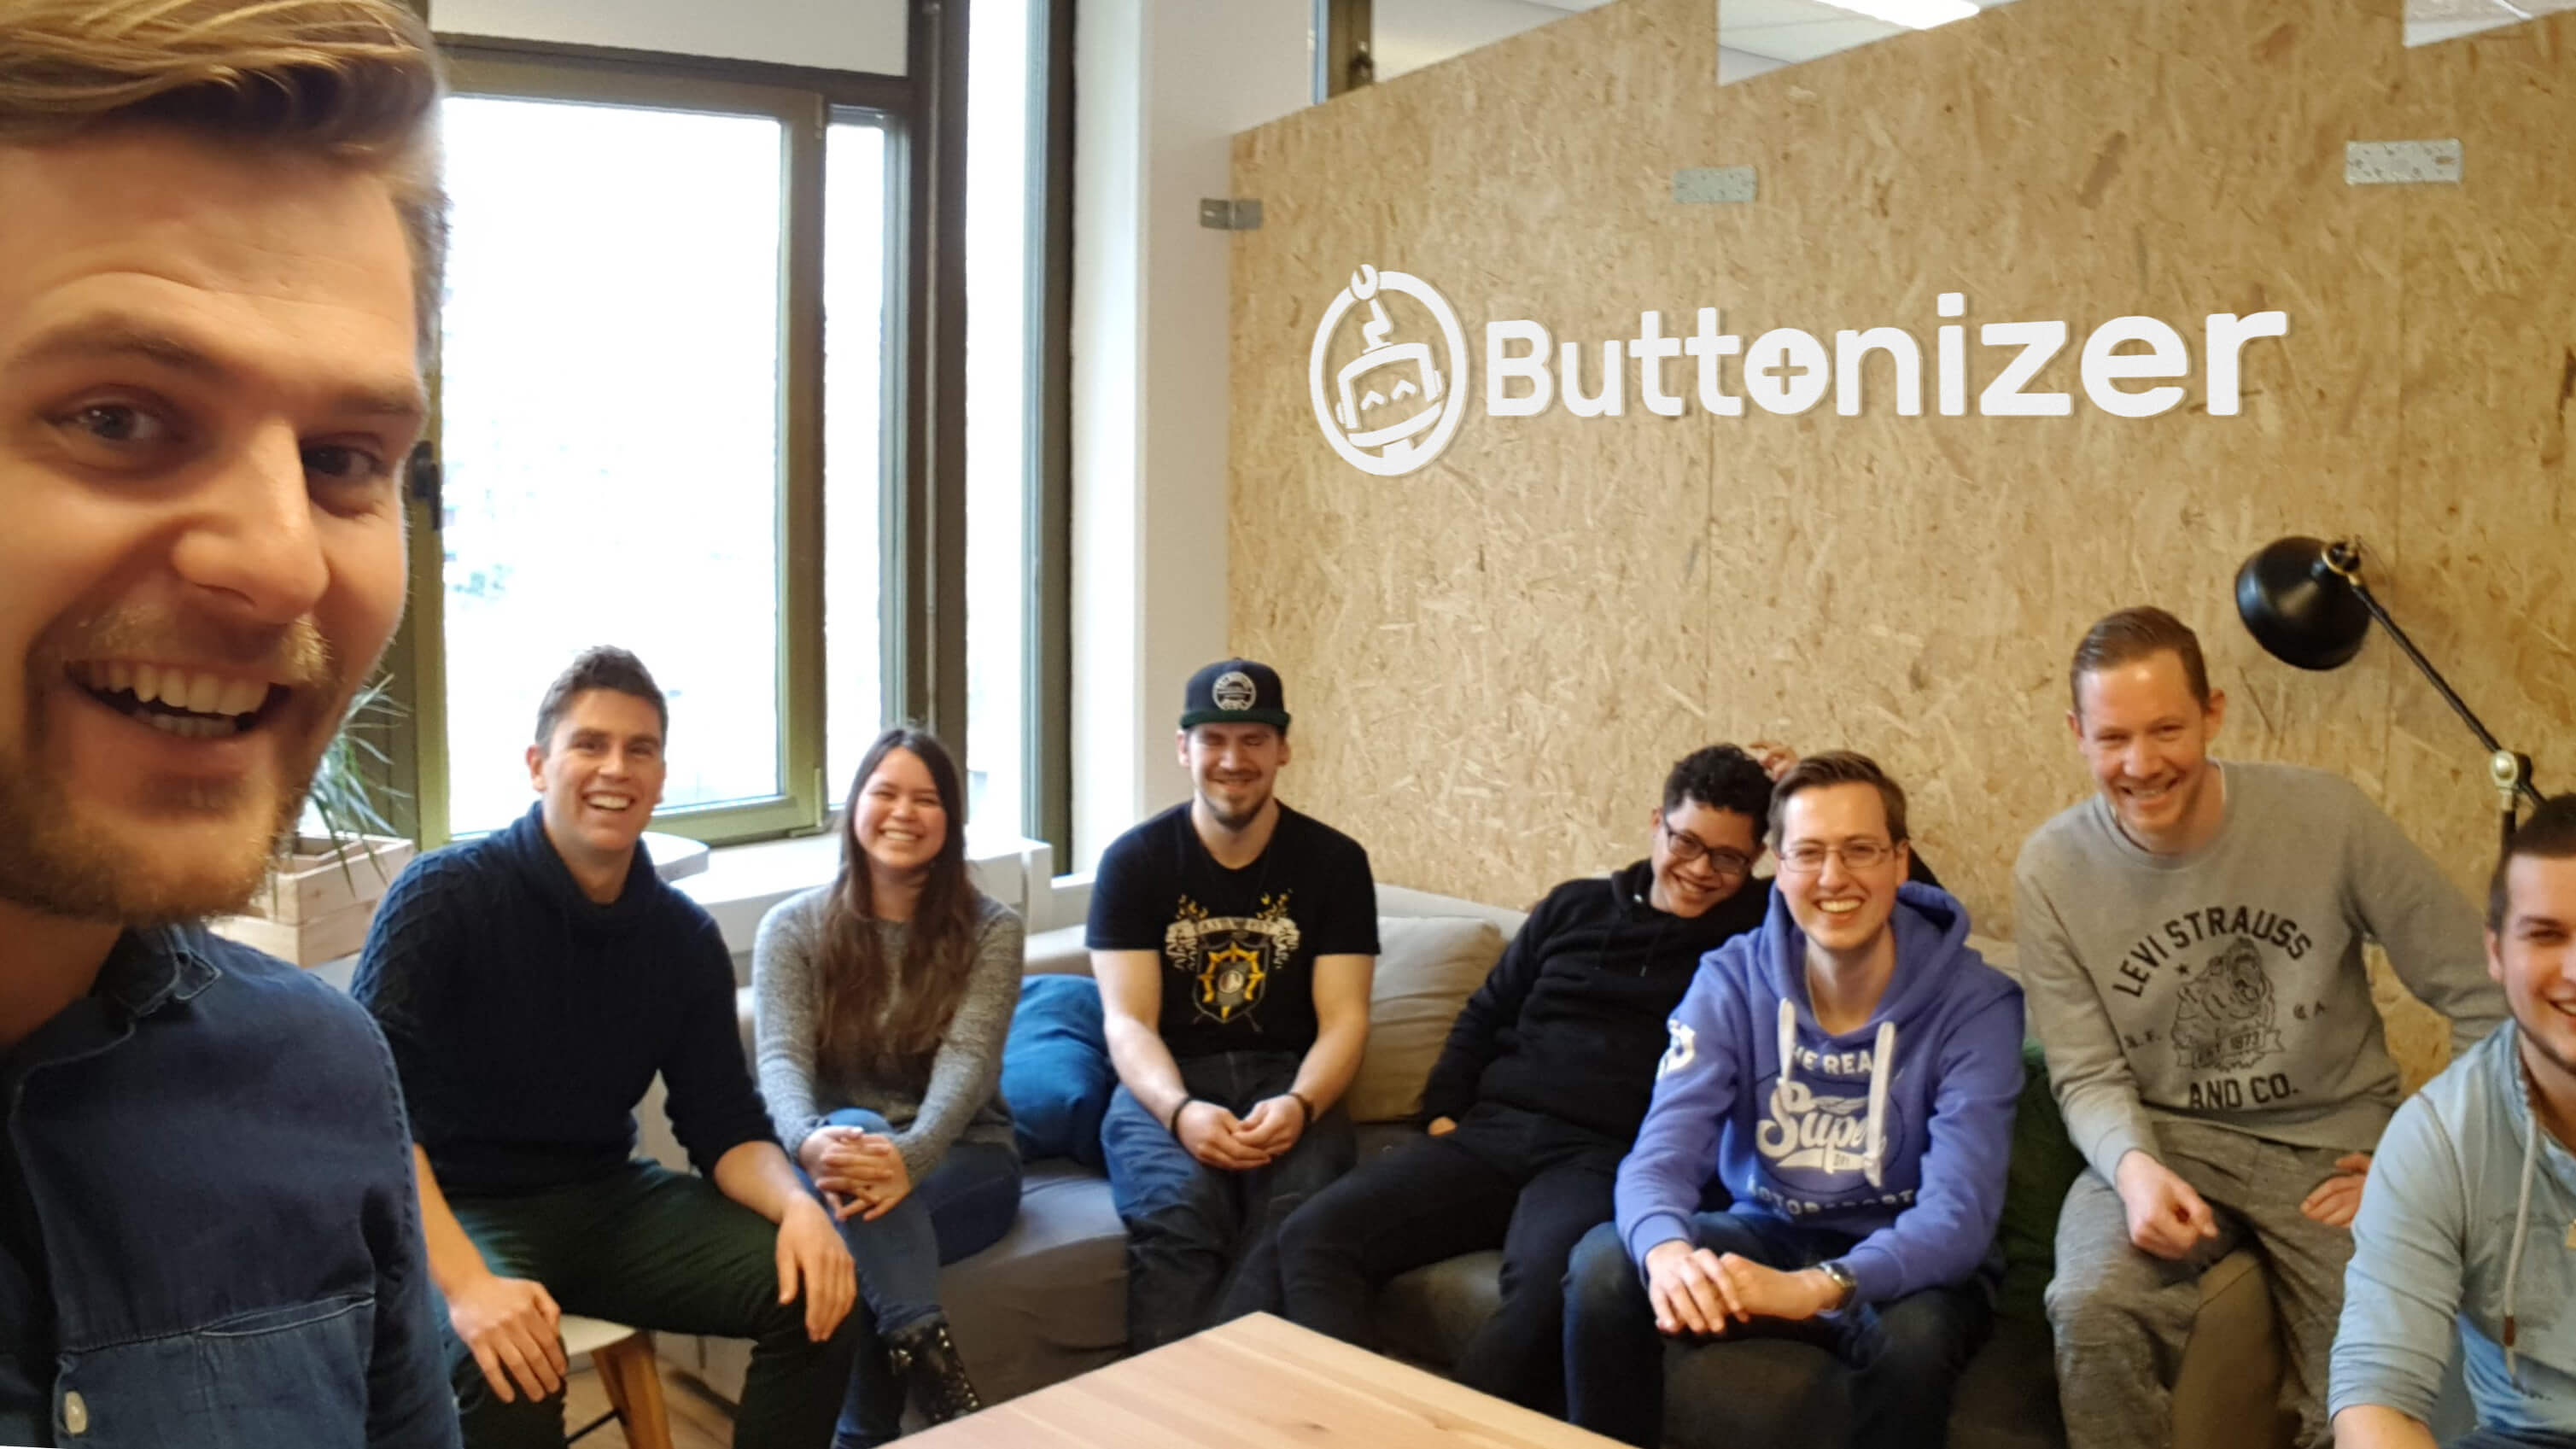 The Buttonizer team